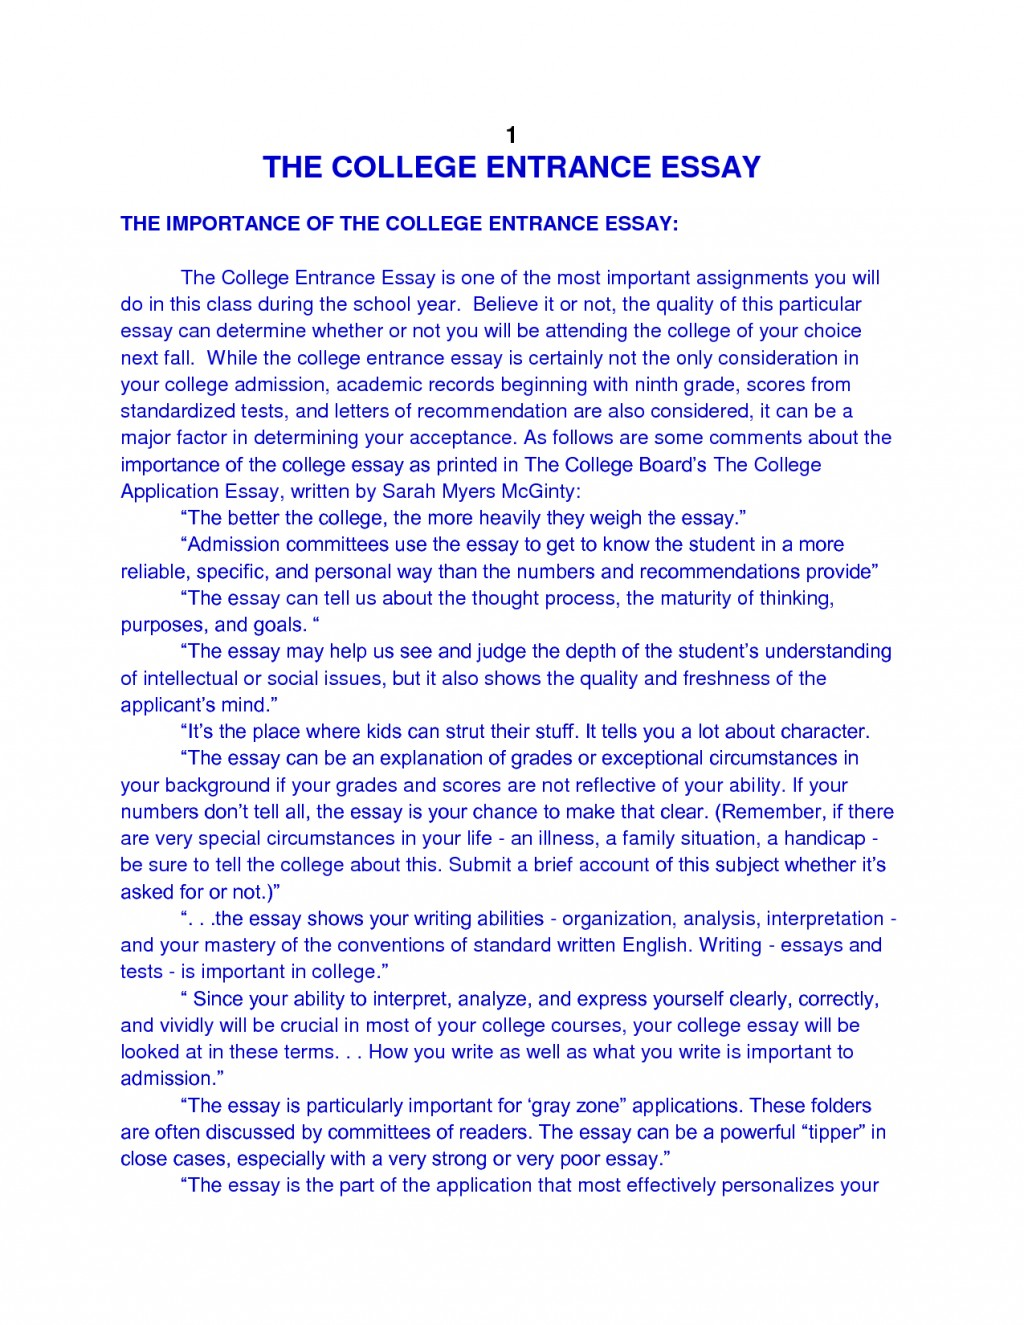 006 Jrx8we564g Essay Example College Writing Unusual Help Admission Service Reviews Custom Large